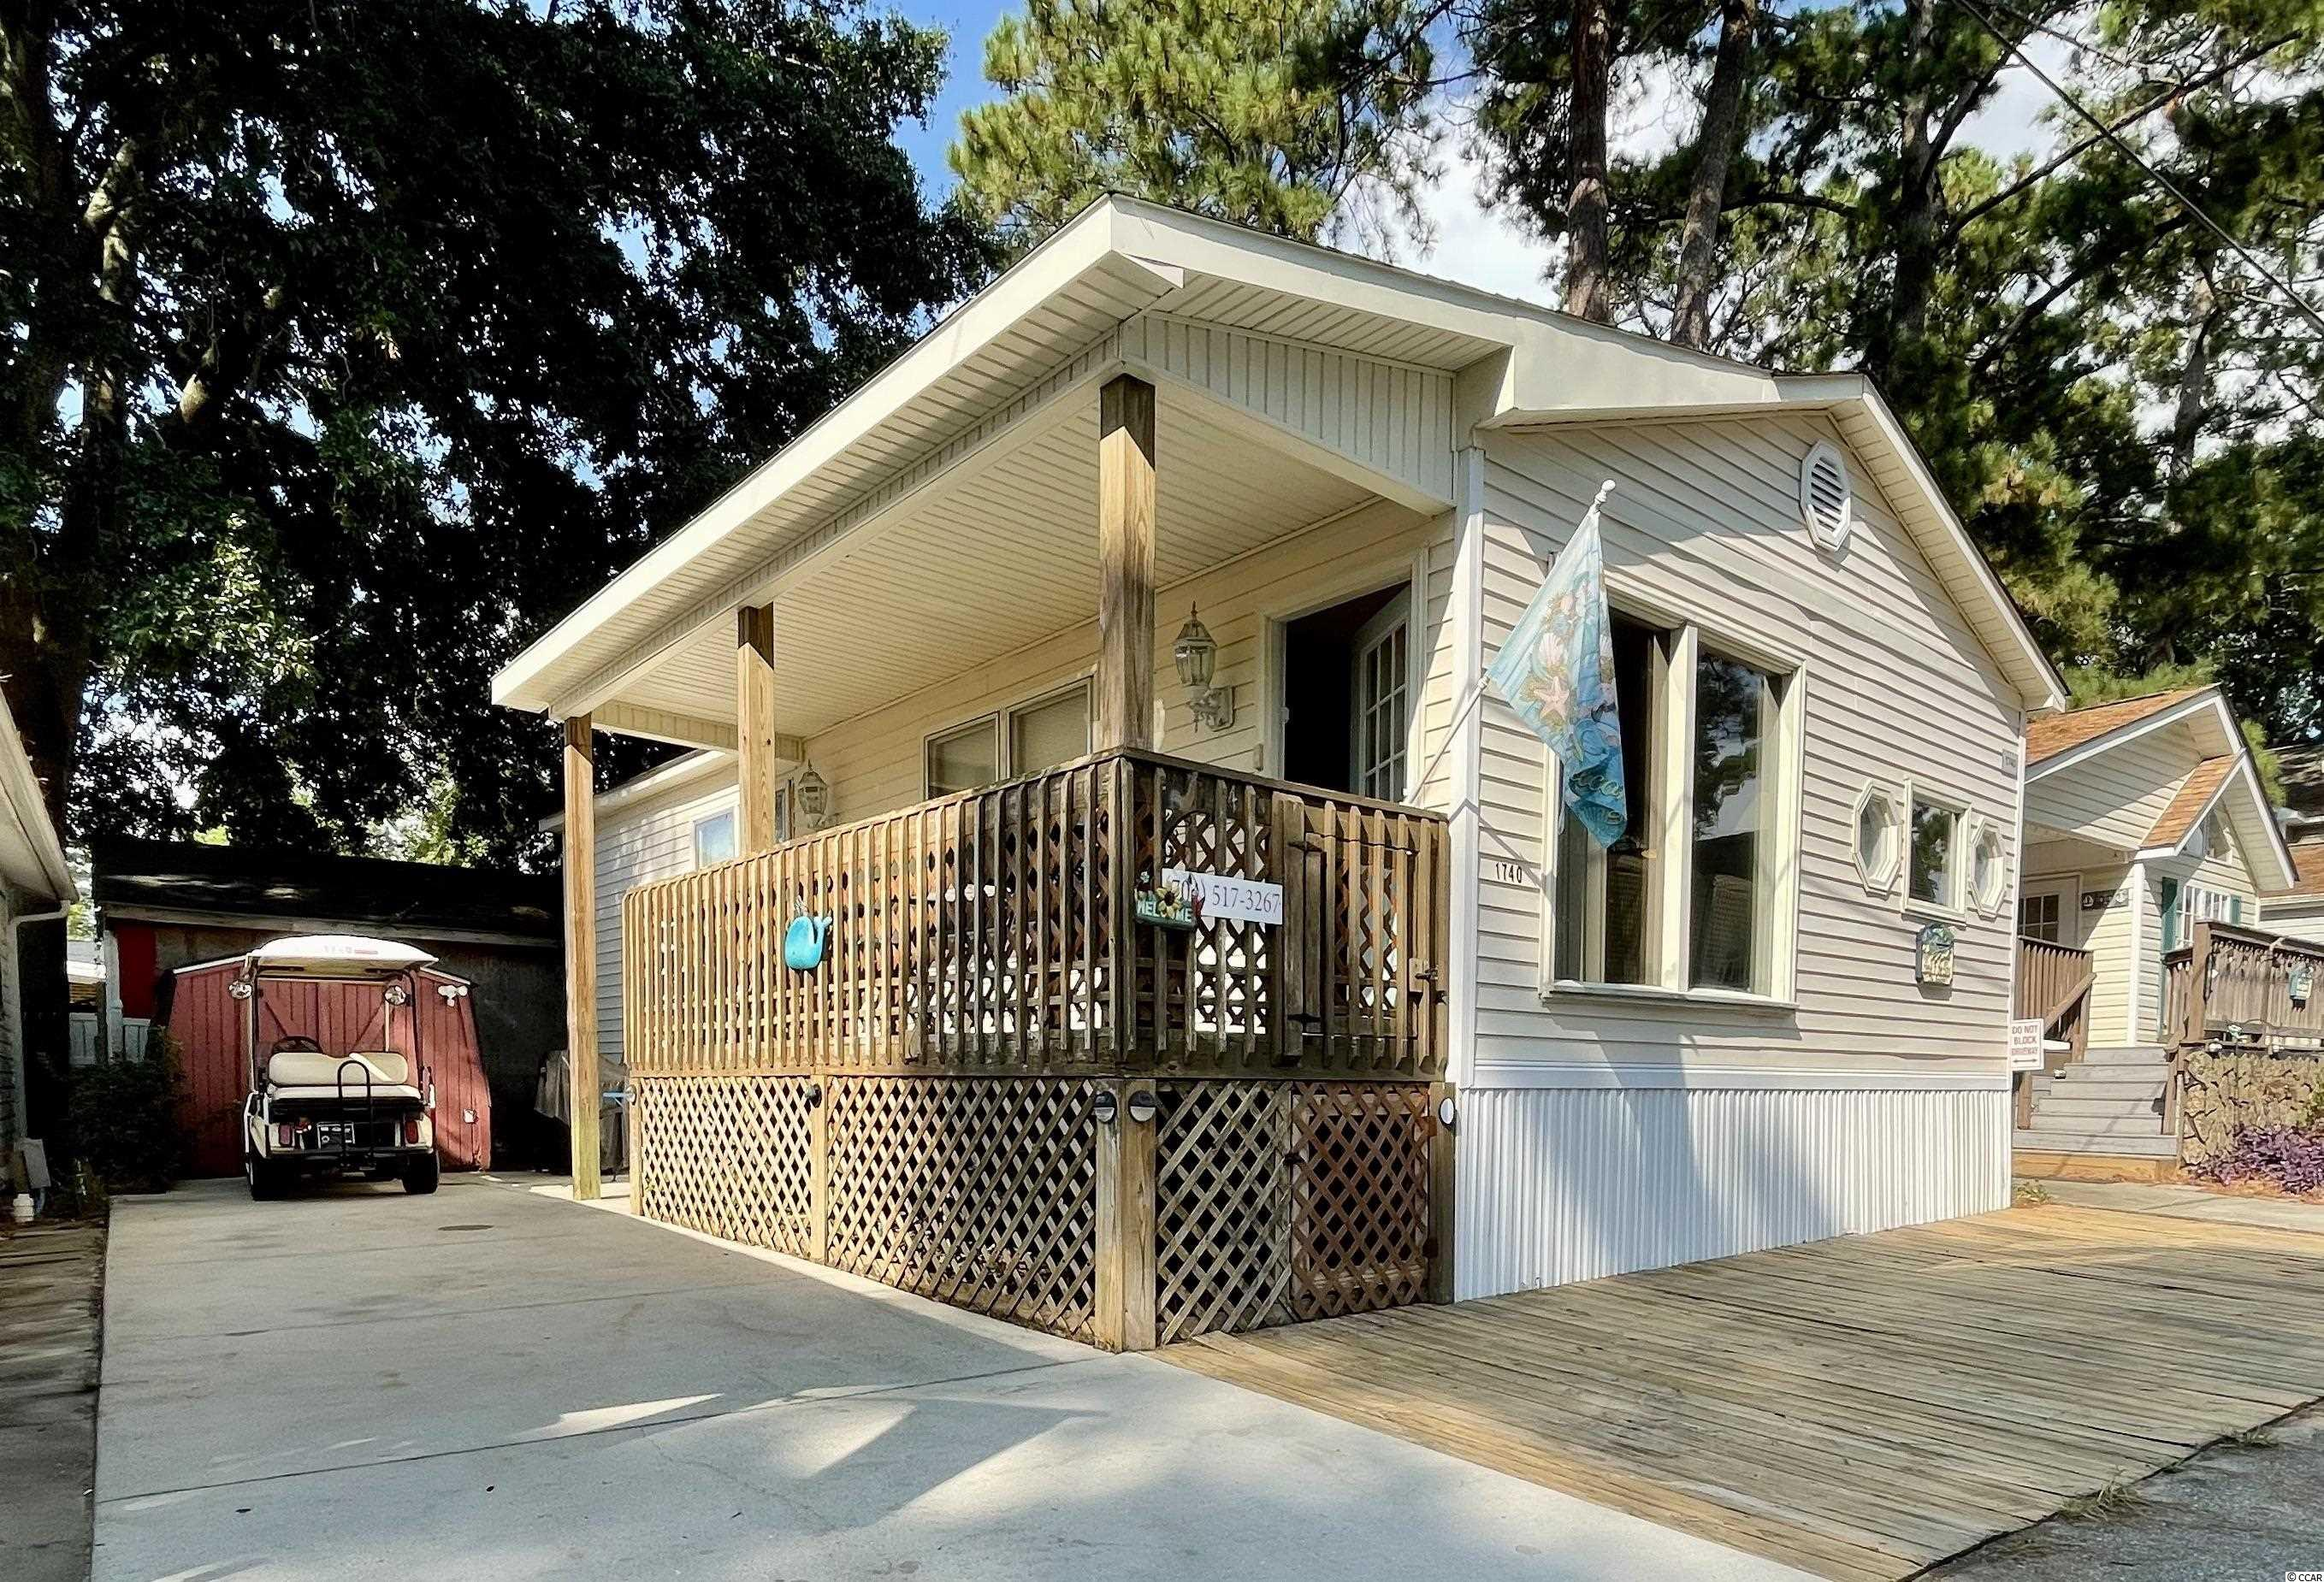 JUST LISTED IS A GREAT LITTLE 2 BED/2 BATH BEACH HOUSE WITH NEW HVAC, STAINLESS STEEL APPLIANCES, NEW FLOORING IN KITCHEN, GUEST BEDROOM AND BATH AND A MASTER BEDROOM WITH HUGE ENSUITE IN OCEAN LAKES! Large open floor plan with plenty of gathering space for the entire family. A covered porch and paved driveway offer great outdoor beach living. This home is being sold fully furnished including all furnishings, decor, appliances, washer/dryer (in master bath) and golf cart! Must honor 2021 rentals. Now showing!  There is no HOA in Ocean Lakes however, all permanent home sites are located on leased land, which are payed in semiannual installments due in January and July.   Amenities abound in Ocean Lakes' gated community and include almost a mile of pristine white sand beach, 24 hour security, trash pick-up, free cable TV, indoor/outdoor swimming pools, water park/slides, lazy river, splash zone, 2 full size basketball courts, miniature golf, fire pit, corn hole, shuffle board, horseshoes, ping-pong, Sandy's Down-under skatepark, recreation building, arcade, general store, golf cart rentals, Sandys Meet & Eat restaurant and more!